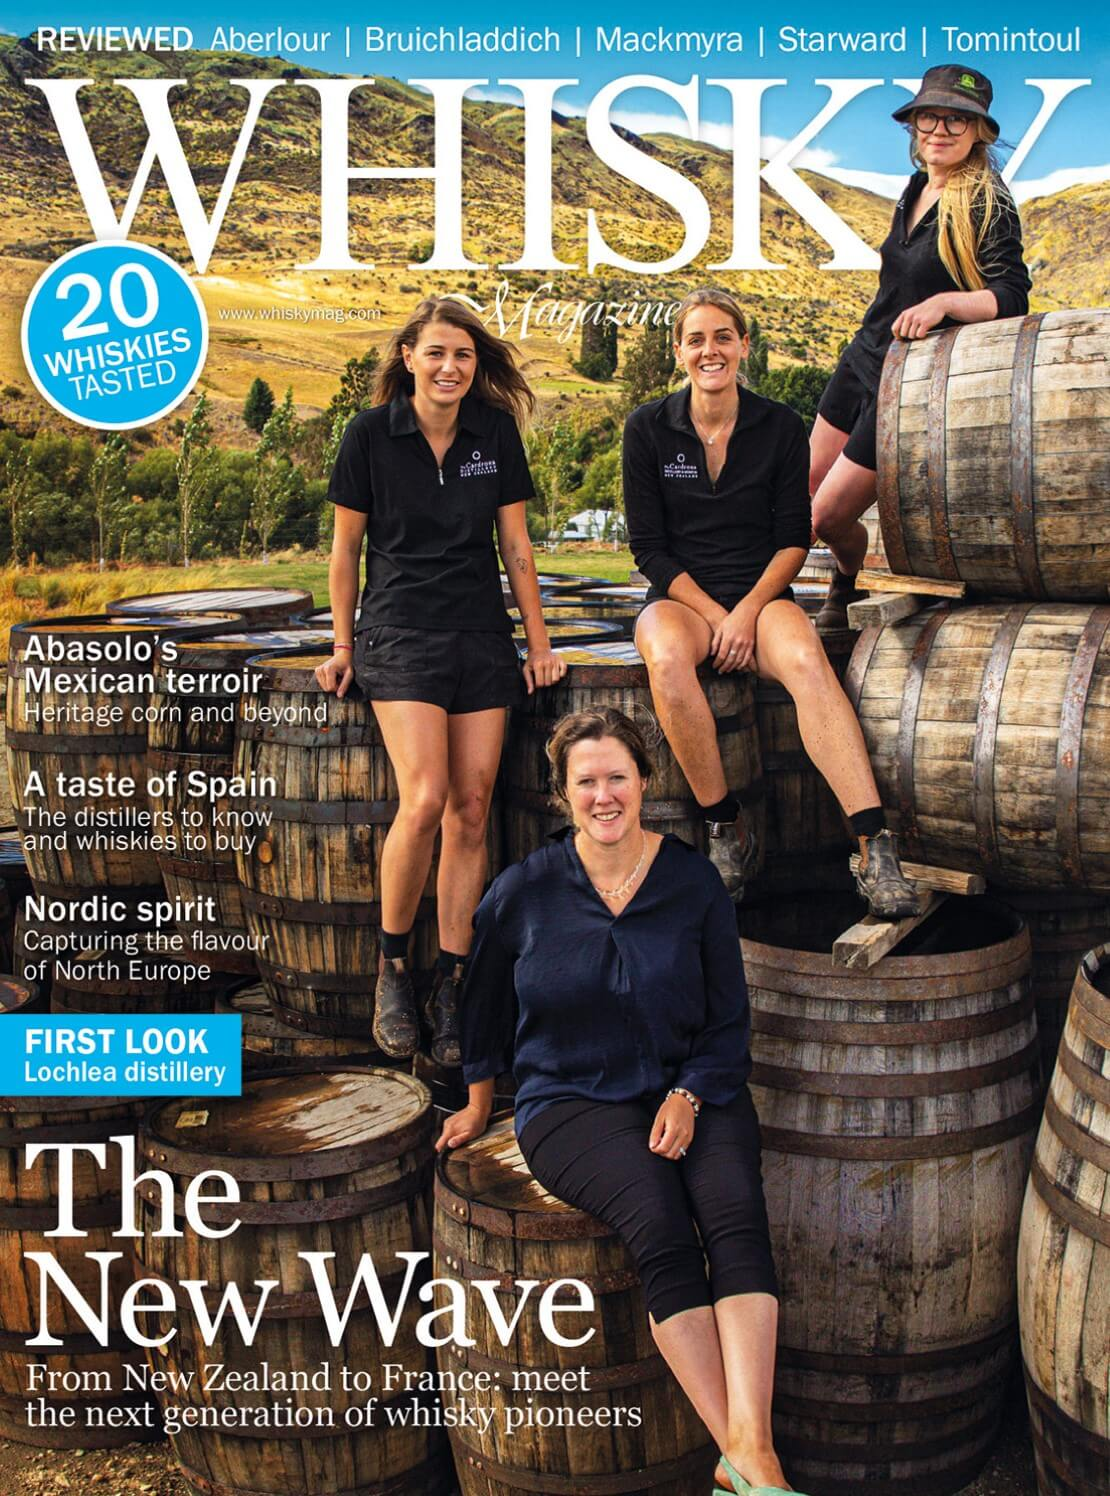 Next Generation Whisky Pioneers A Taste of Spain Capturing the Flavour of North Europe First...